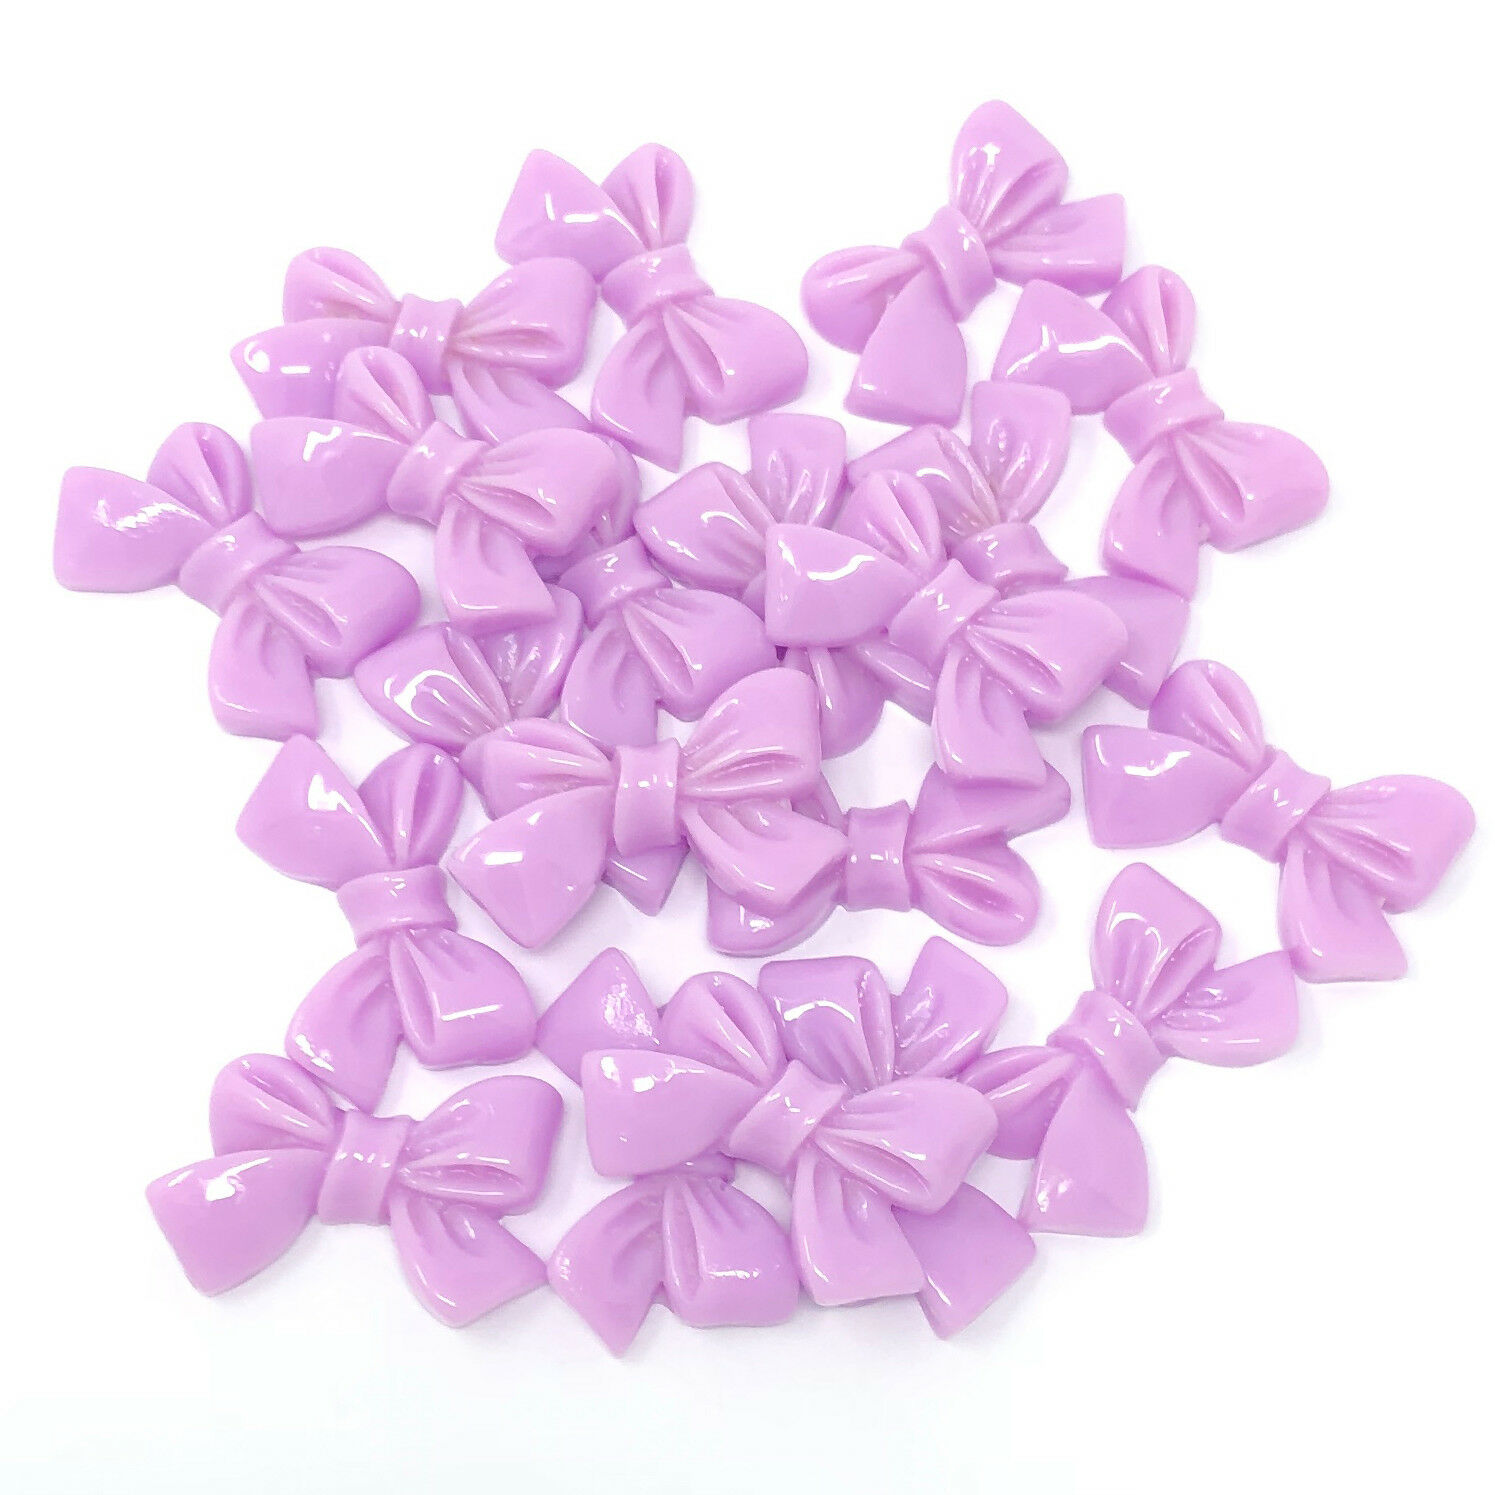 Silver Pegs for Card Making//Craft Embellishments Toppers MIC CRAFT Pack